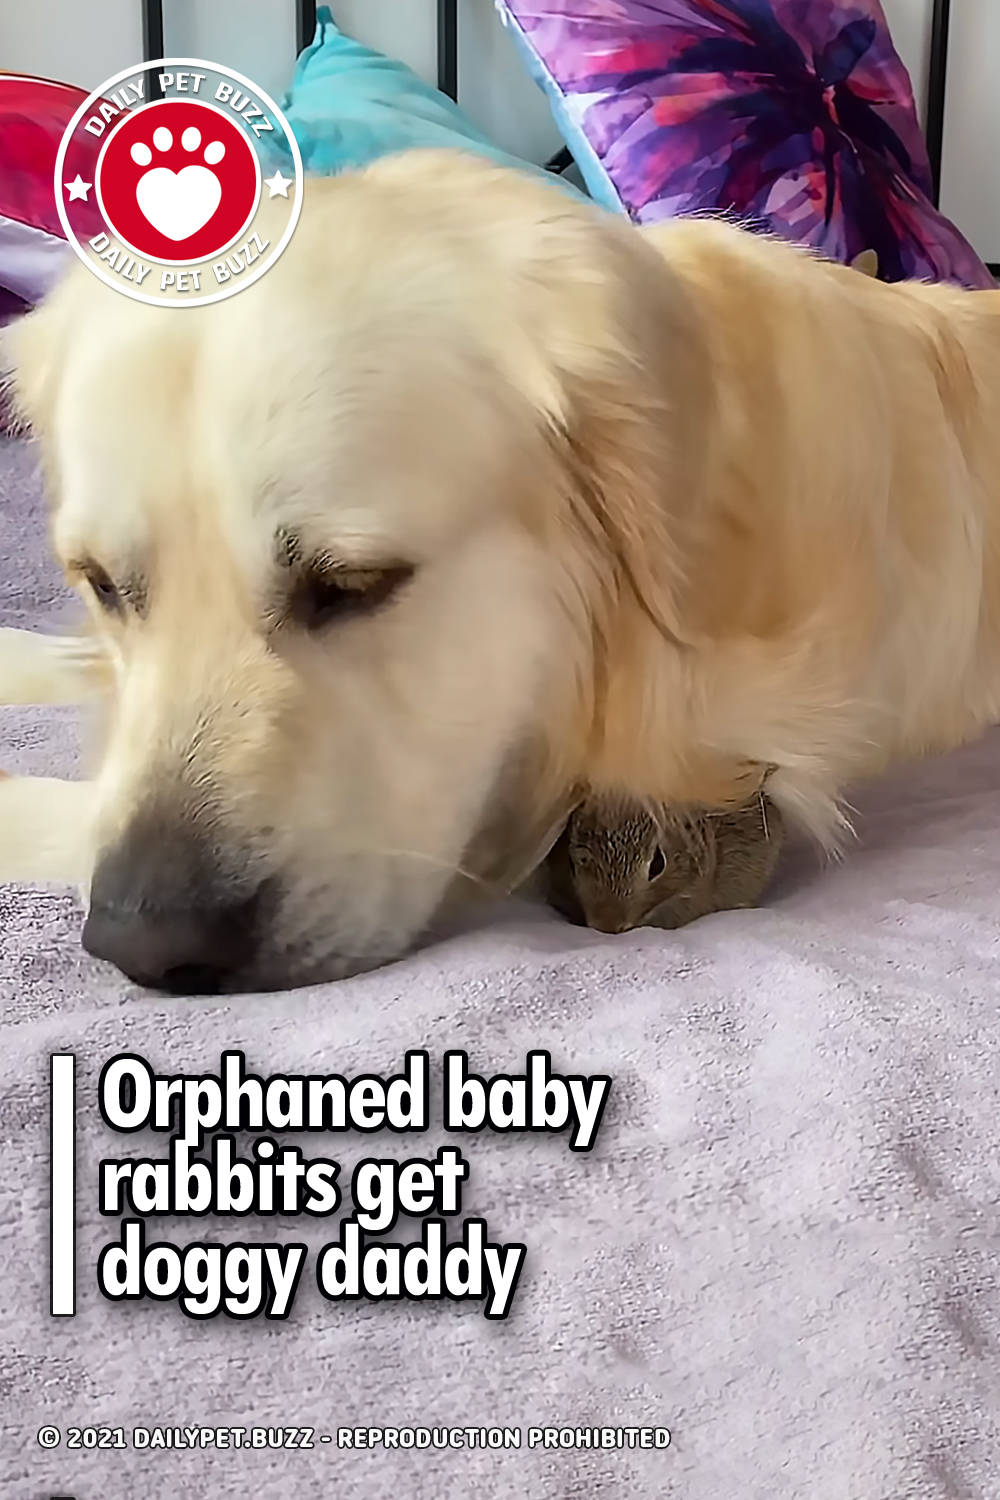 Orphaned baby rabbits get doggy daddy